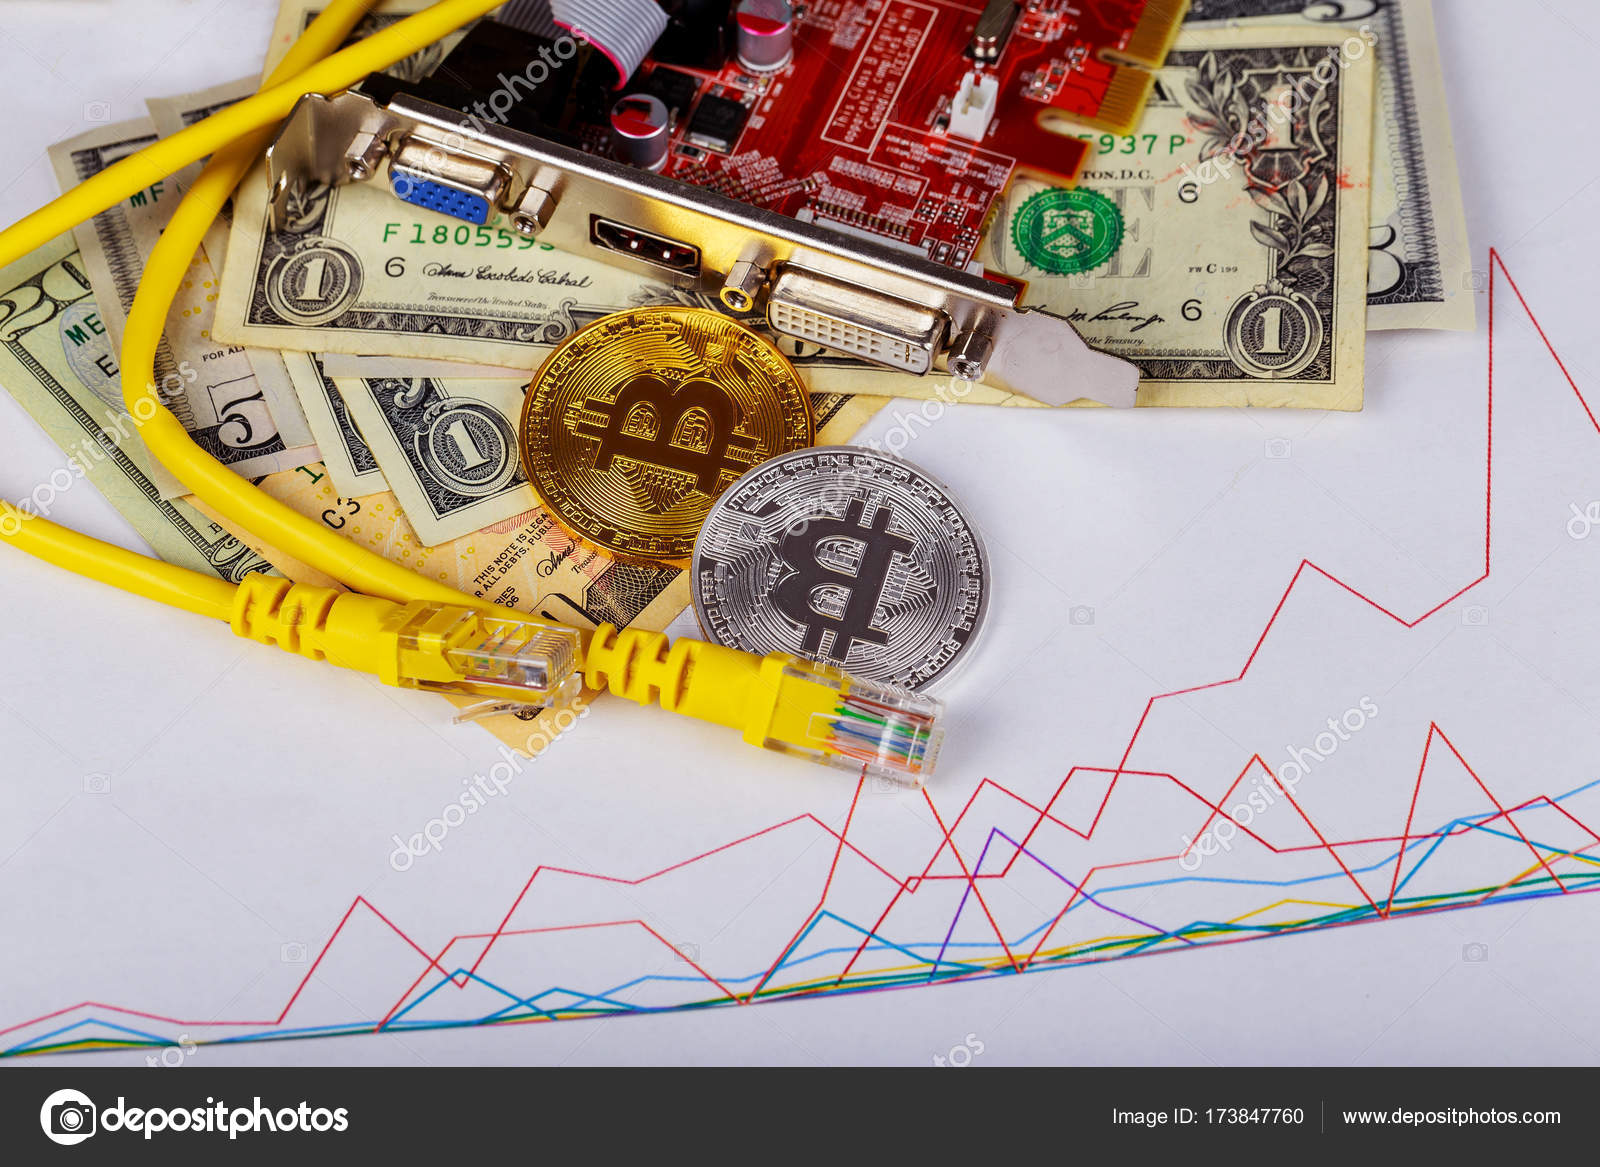 Golden Bitcoin Coins On A Paper Dollars Money Virtual Currency Wiring Without Id Crypto New Lens Flare Coin Graphic Card Internet Wire Photo By Photovs